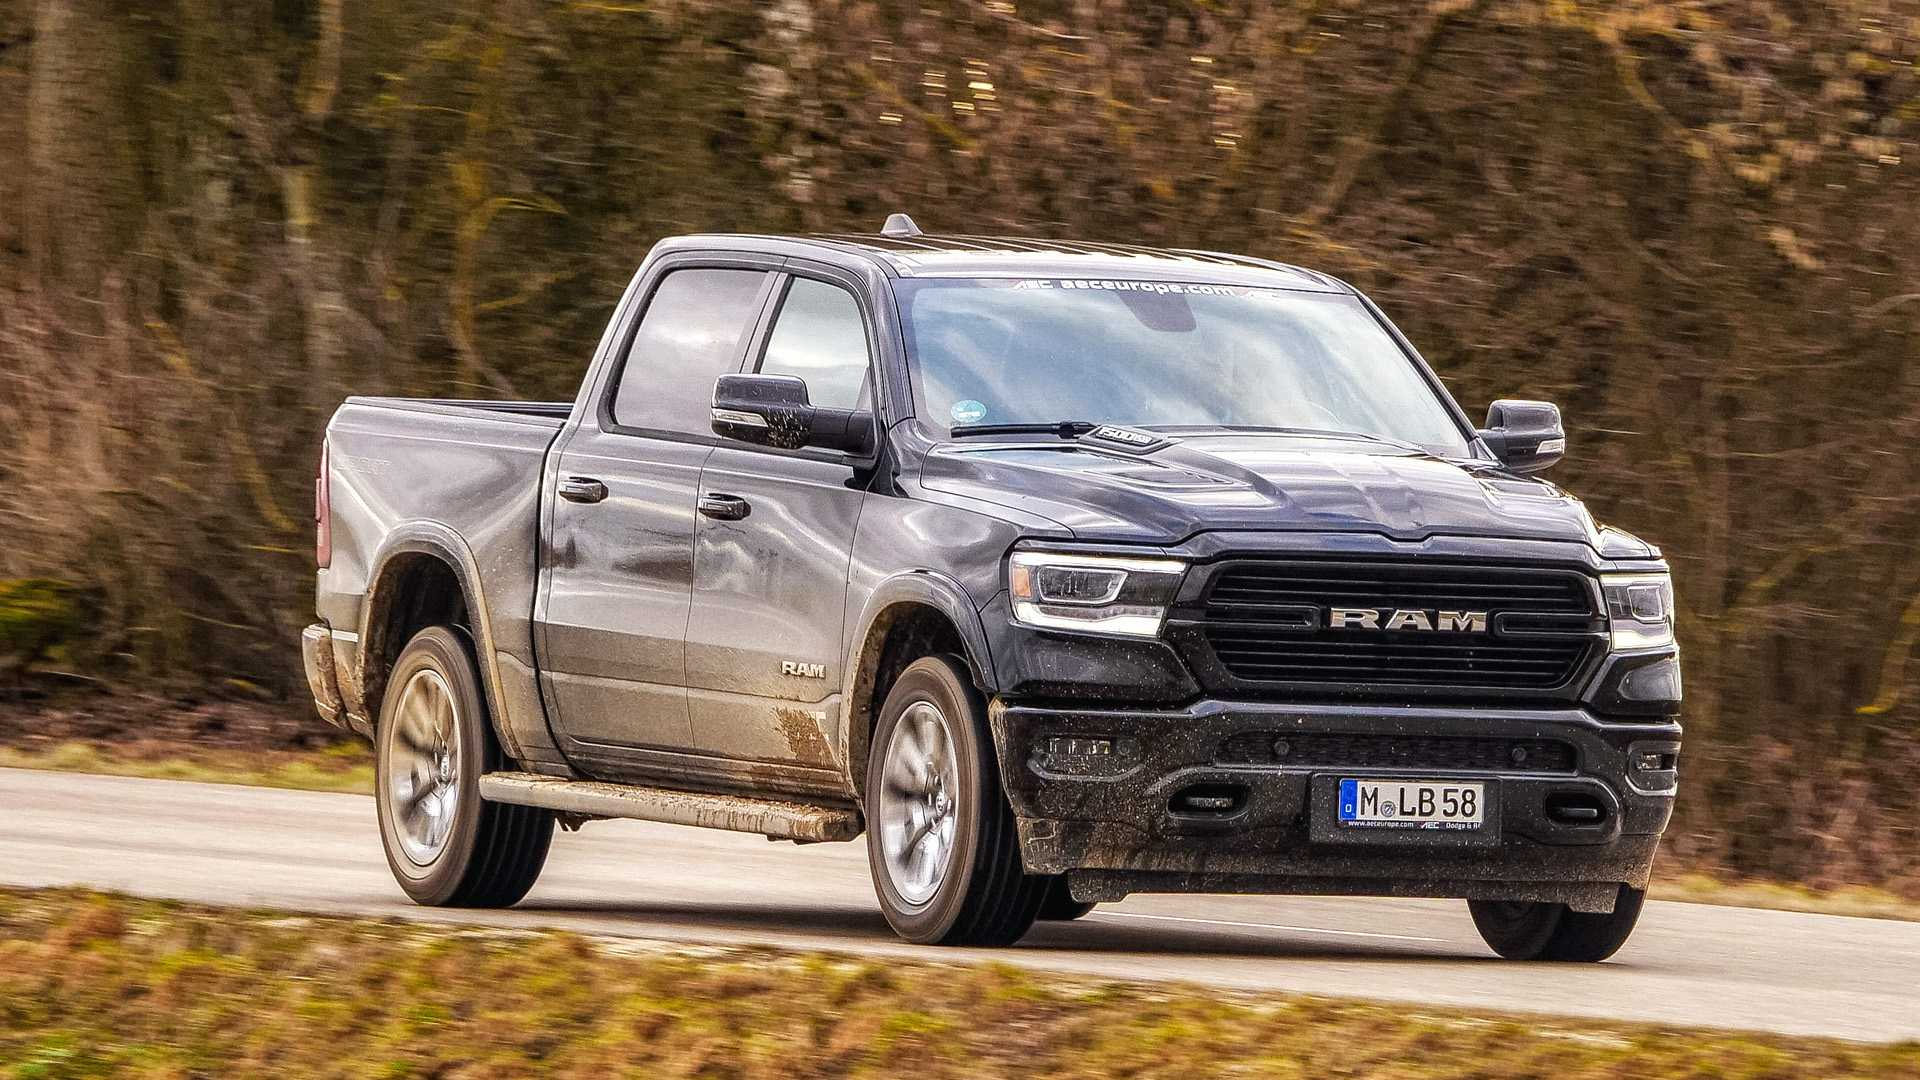 2020 Dodge Ram Truck Specs and Review